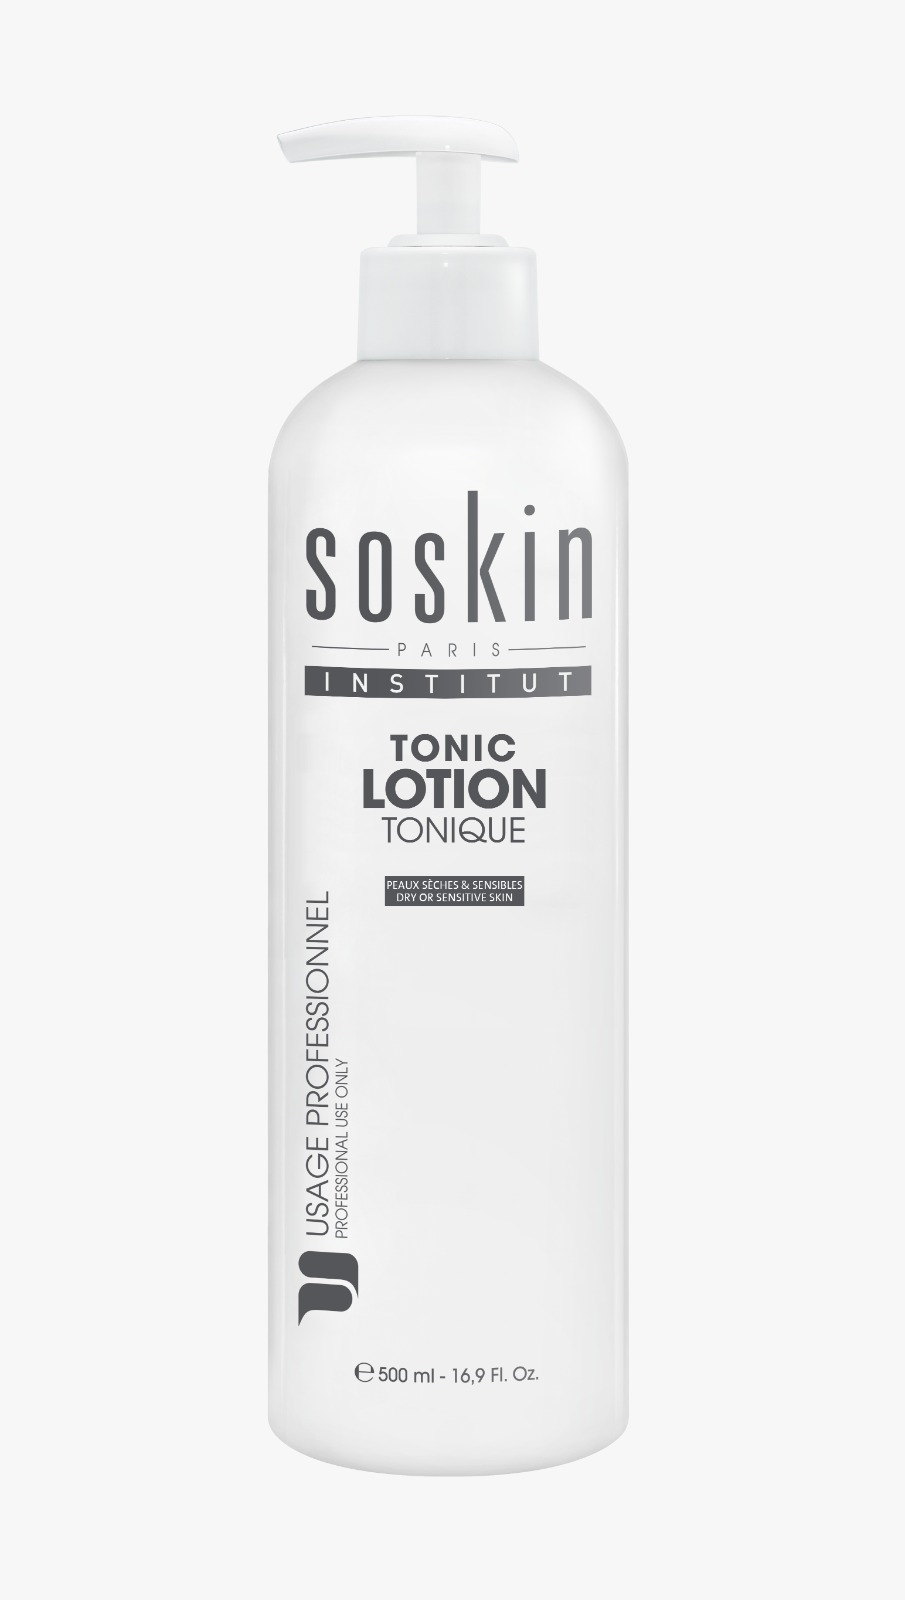 SOSKIN-PARIS TONIC LOTION 500 ml